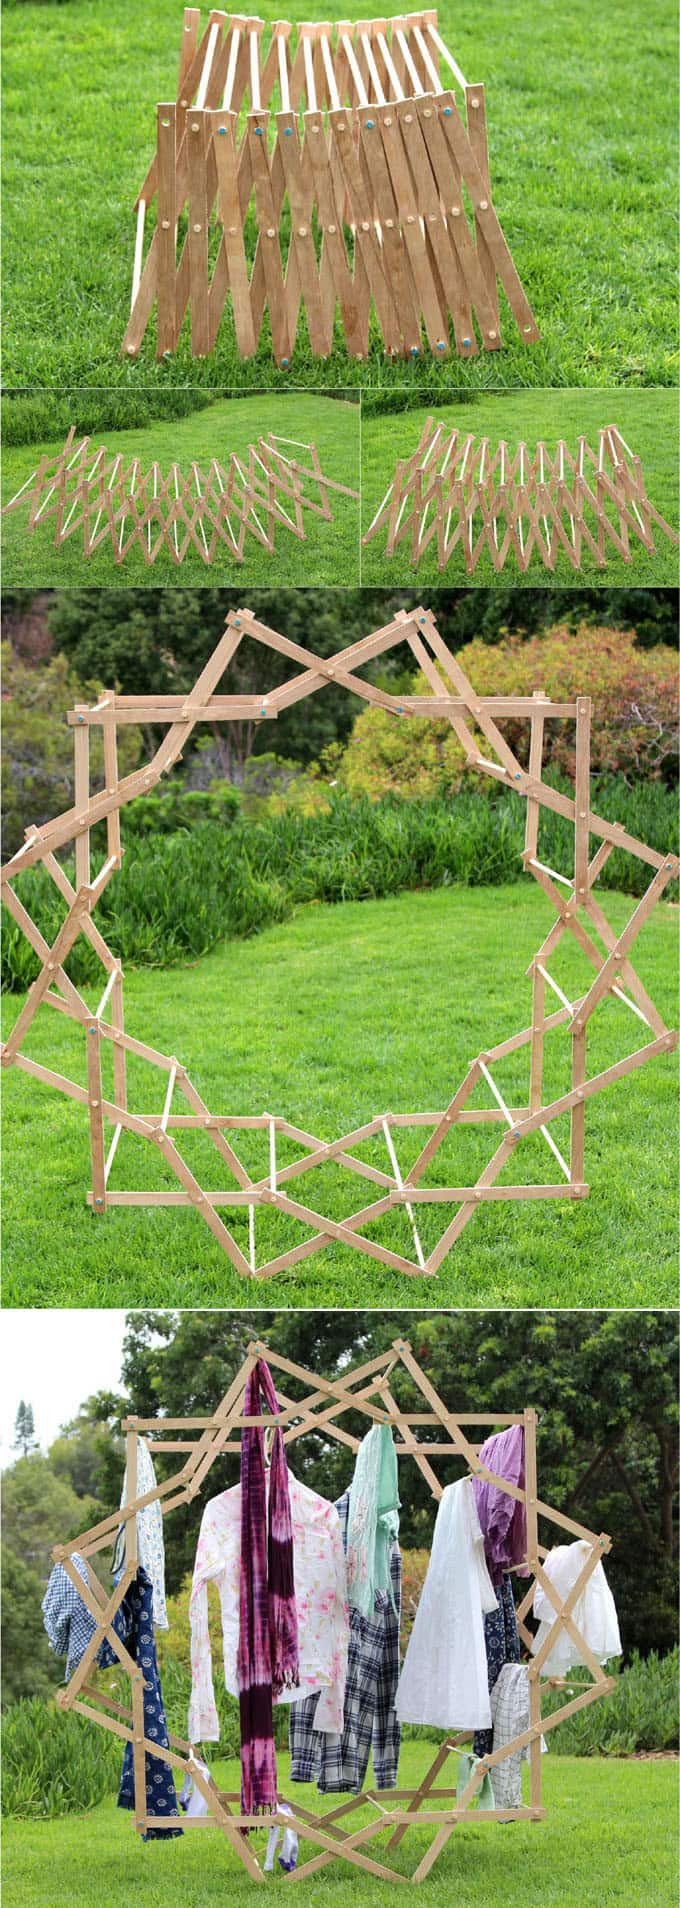 star-shaped-clothes-drying-rack-apieceofrainbowblog (36)